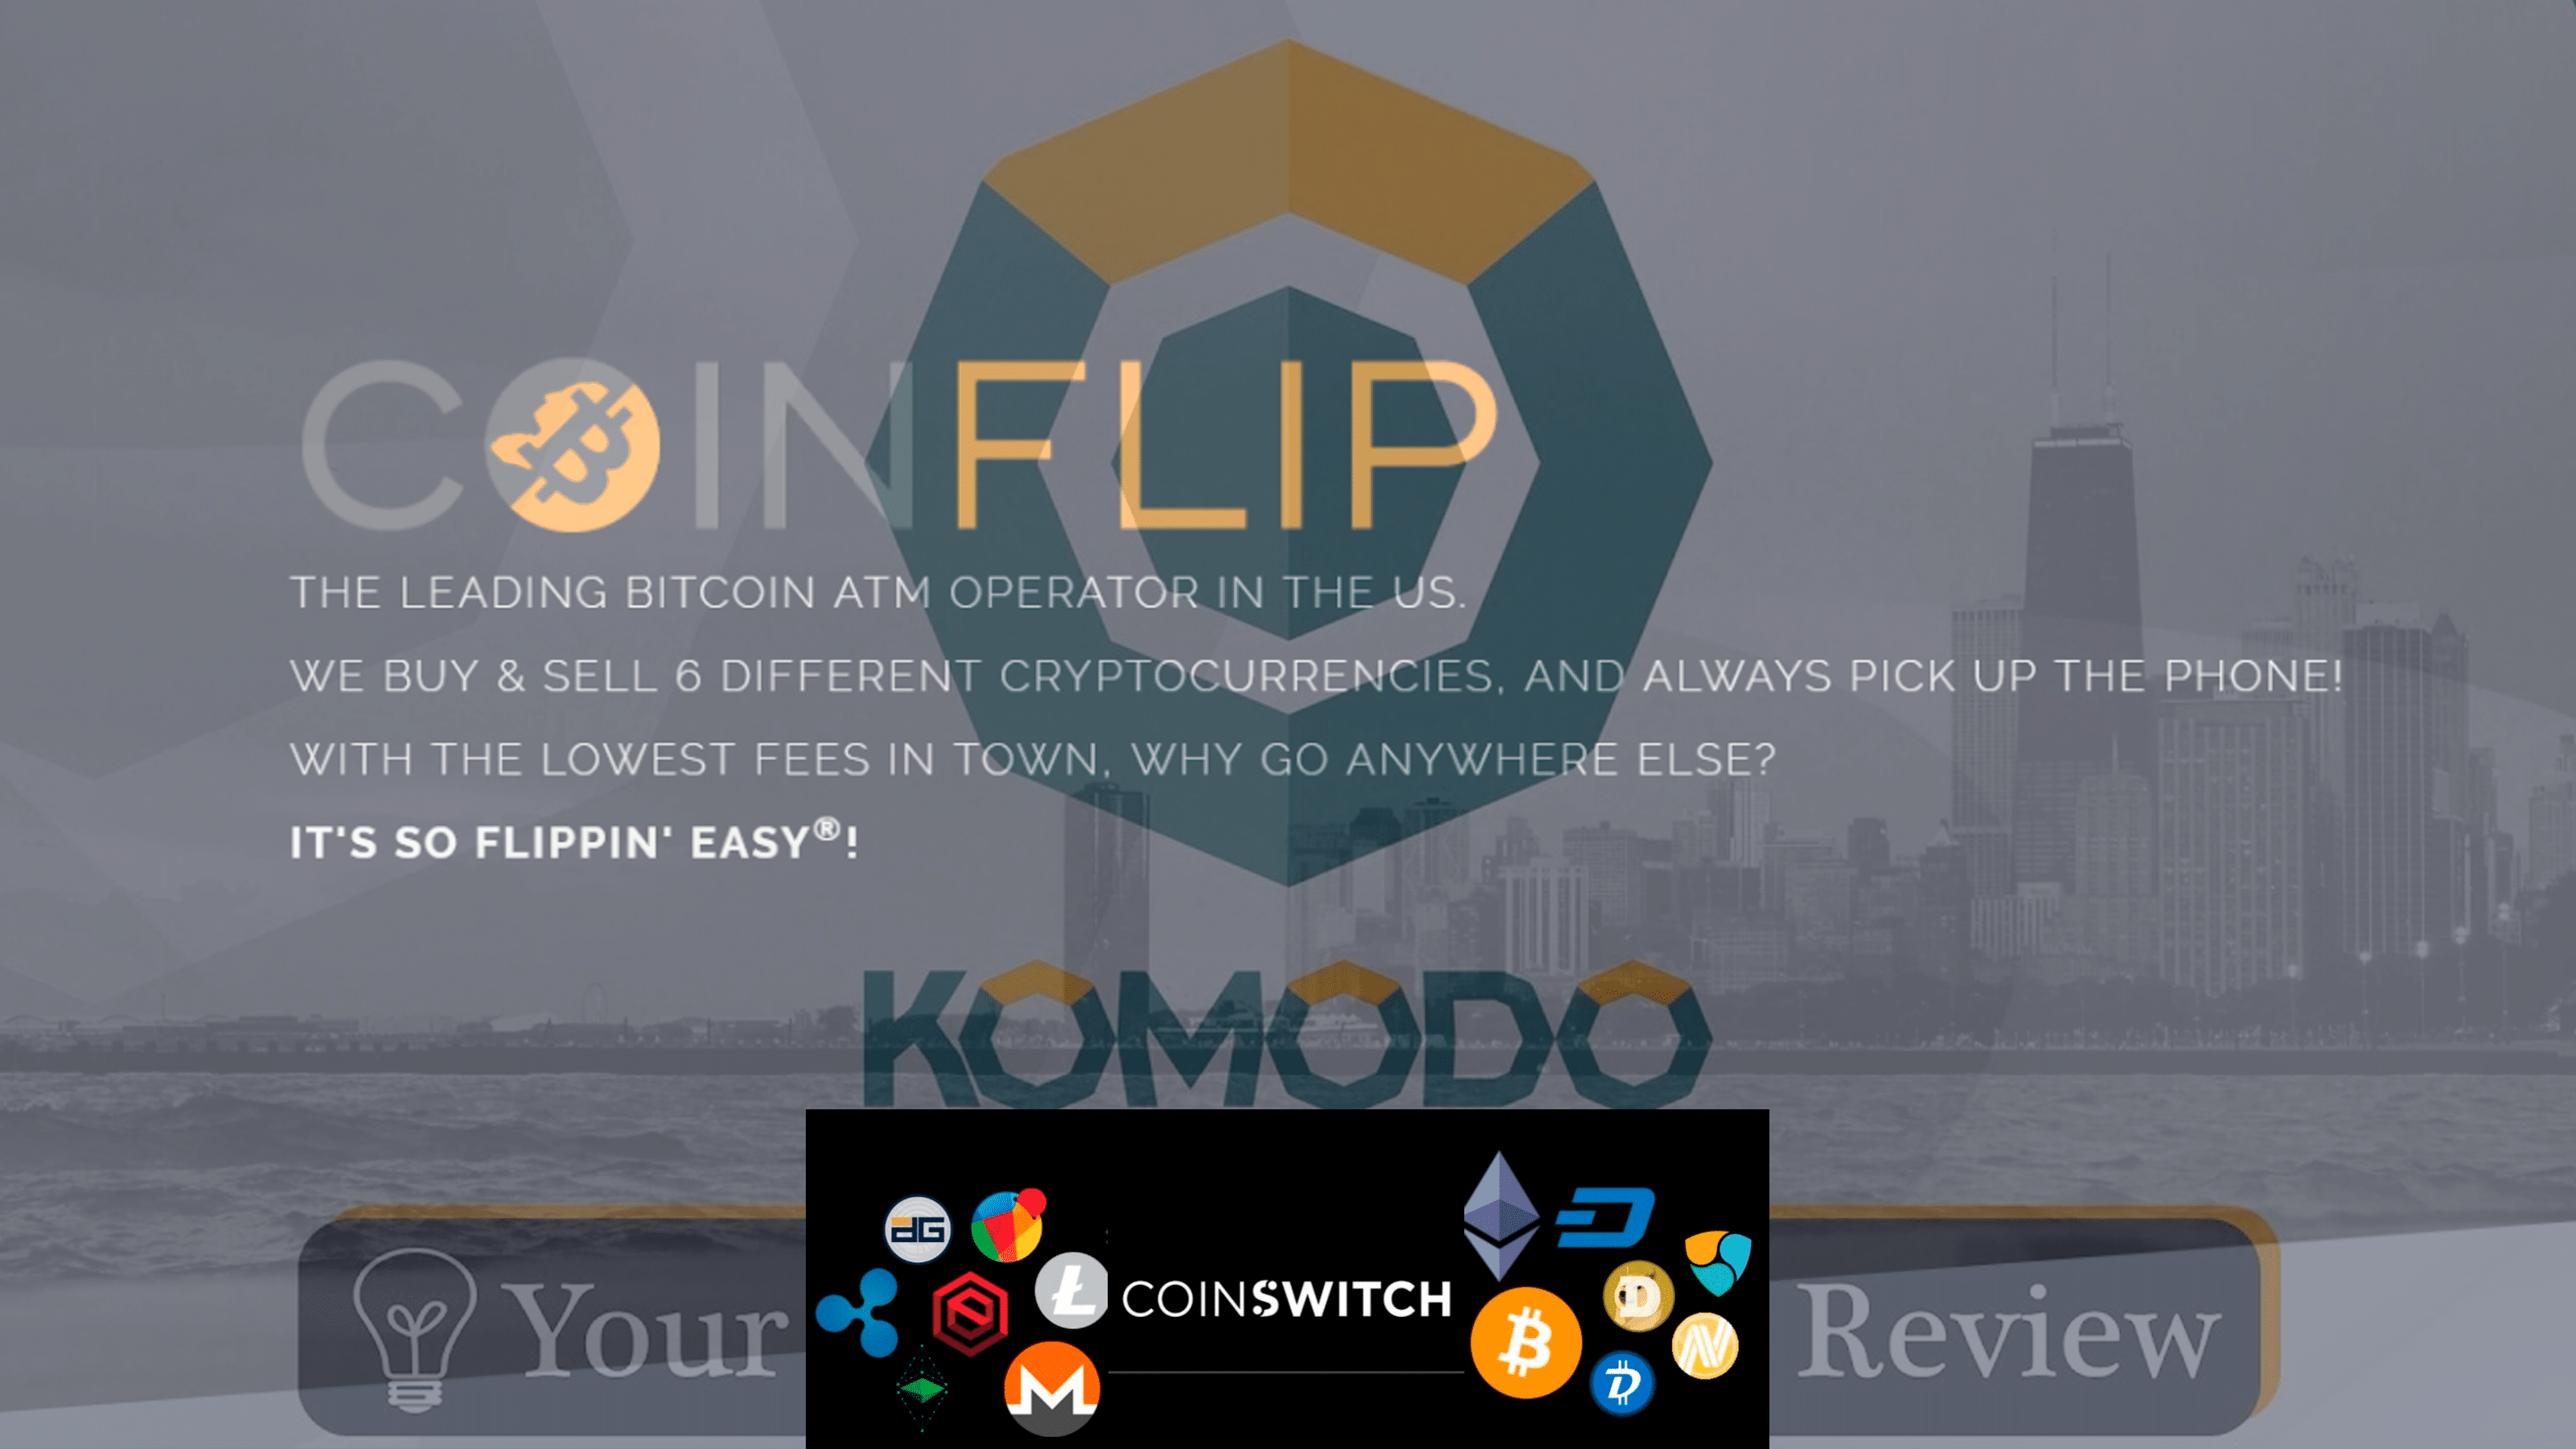 KMD gets listed on Coinflip and launches with the exchange of Coin switch